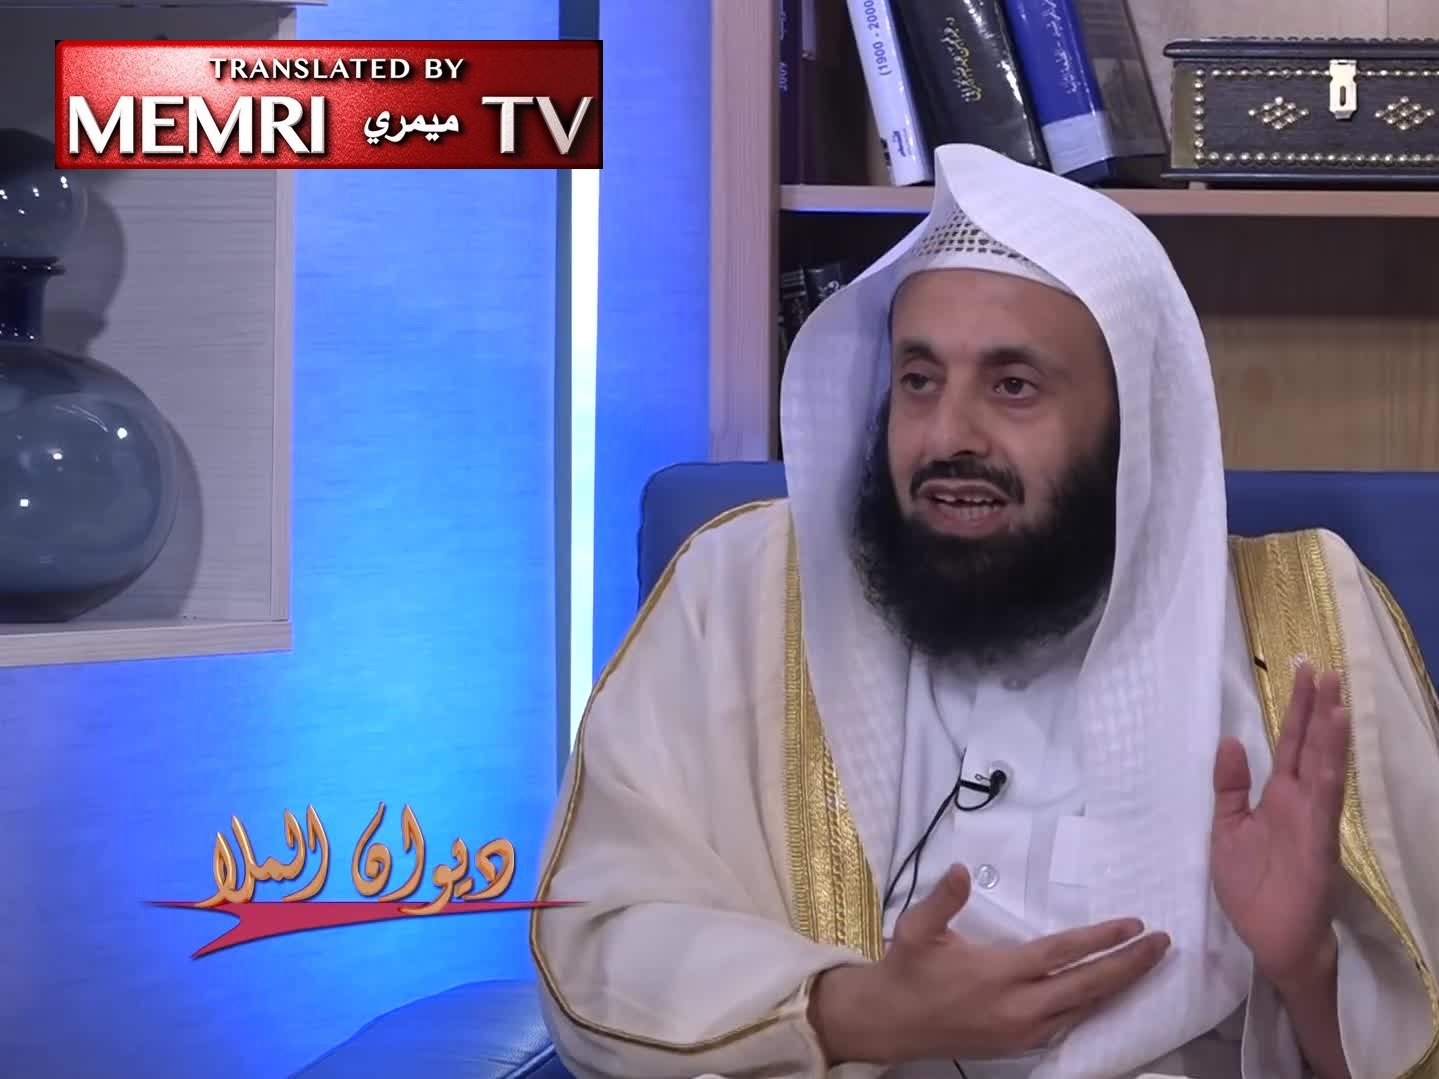 Saudi Islamic Scholar and University Lecturer Dr. Abdulaziz Al-Rays: People Must Not Rebel against a Ruler Even if He Flogs Them or Commits Adultery and Homosexual Acts